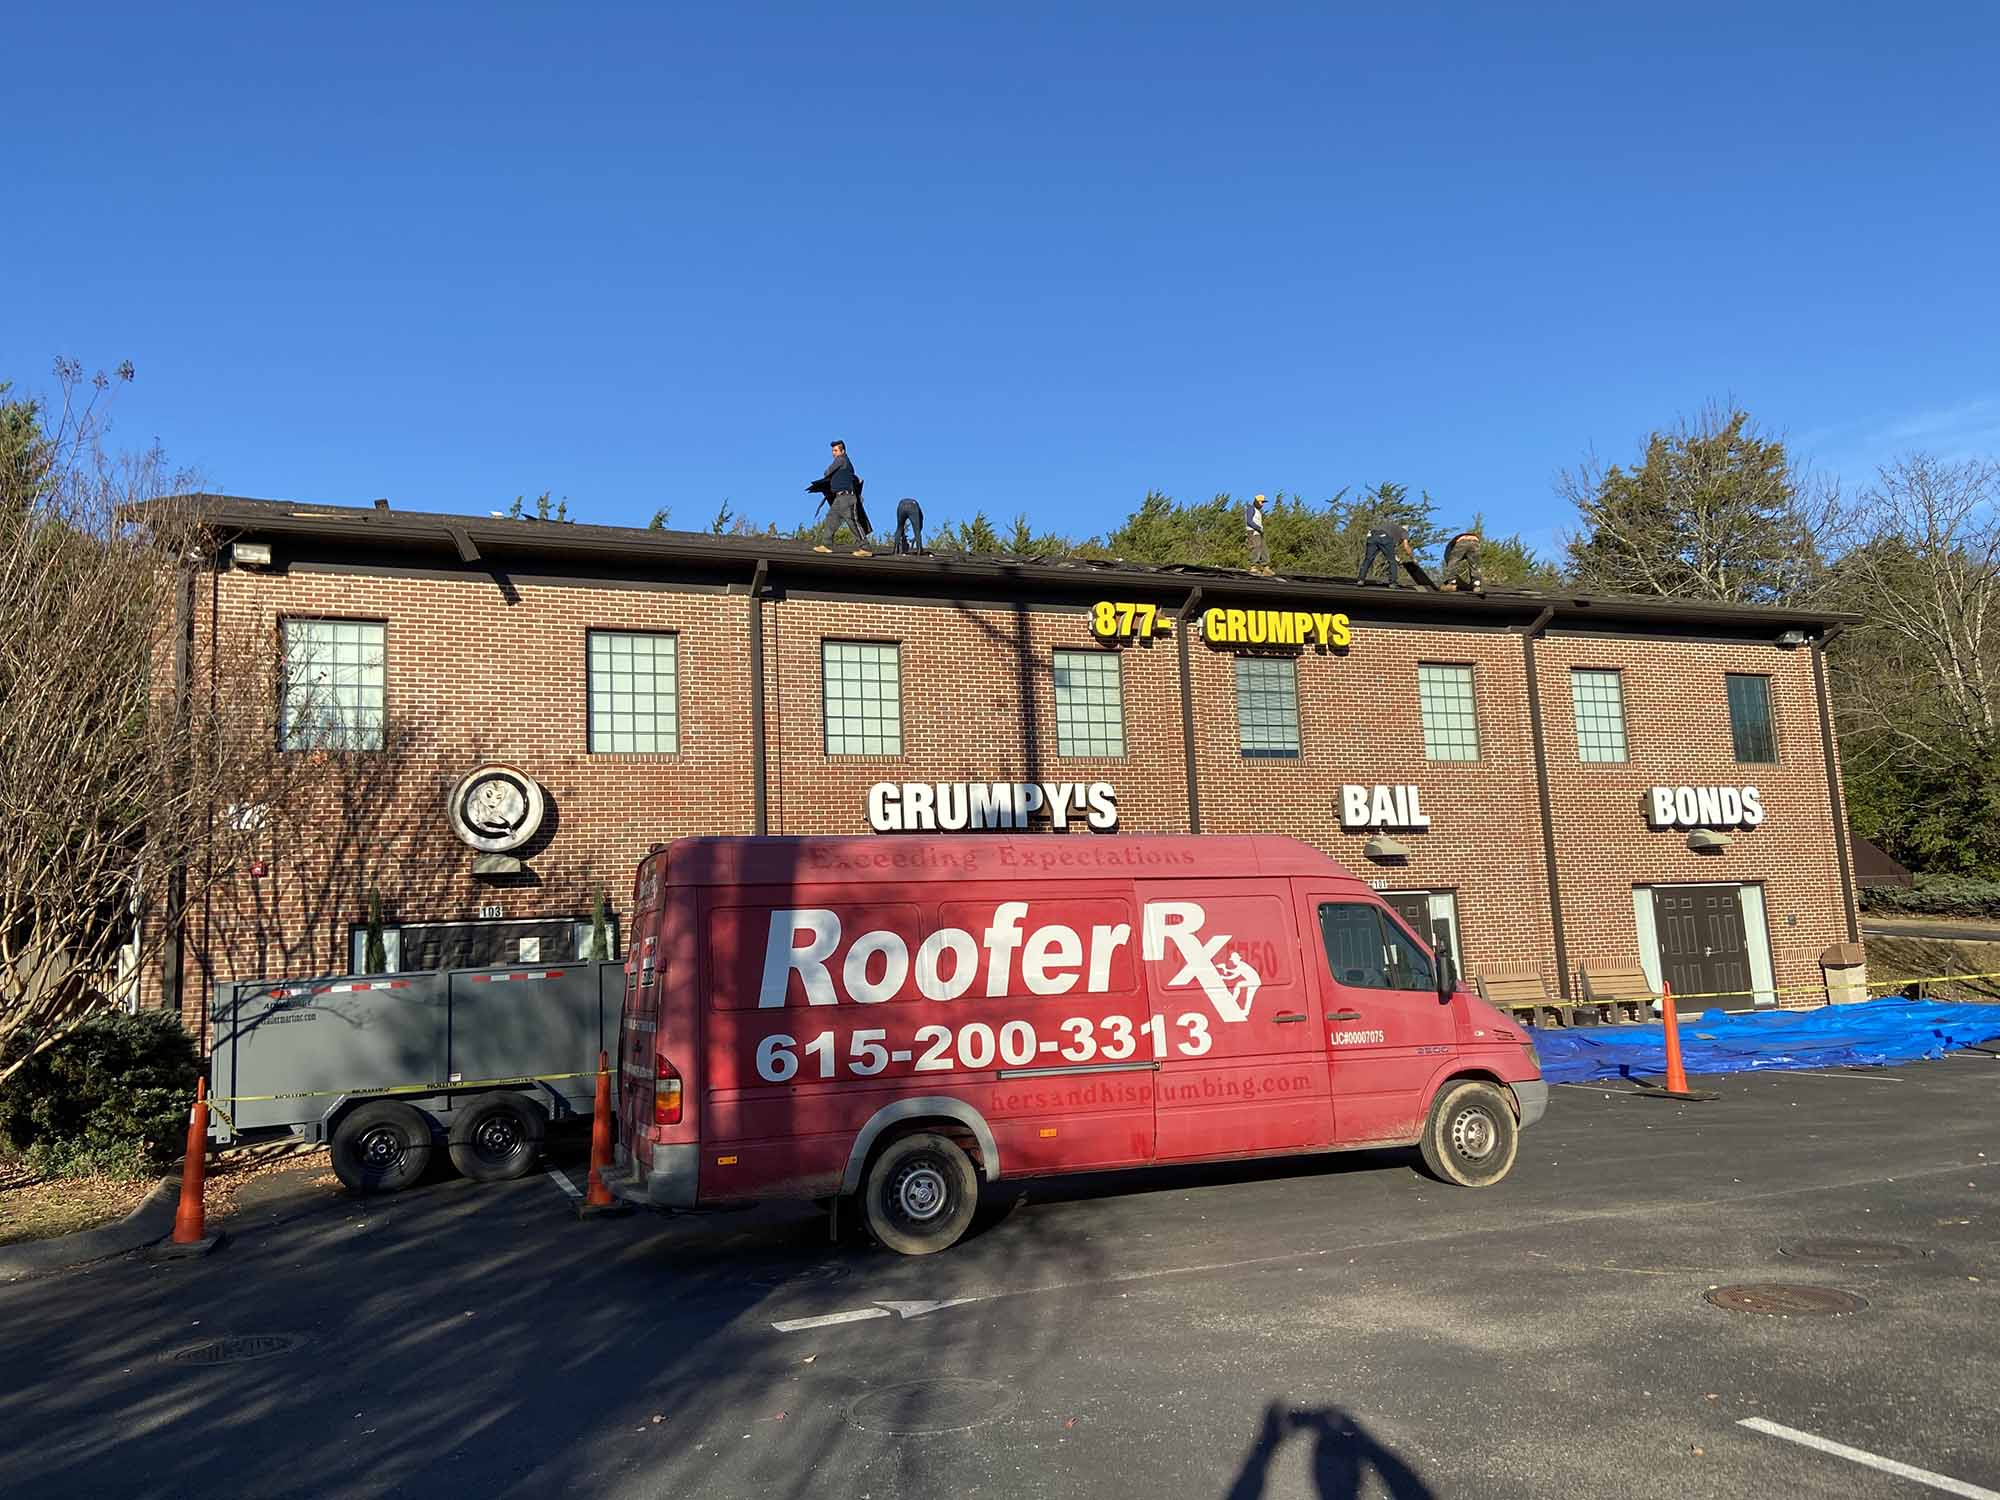 Commrecial Roofing Franklin TN - Roofer Rx